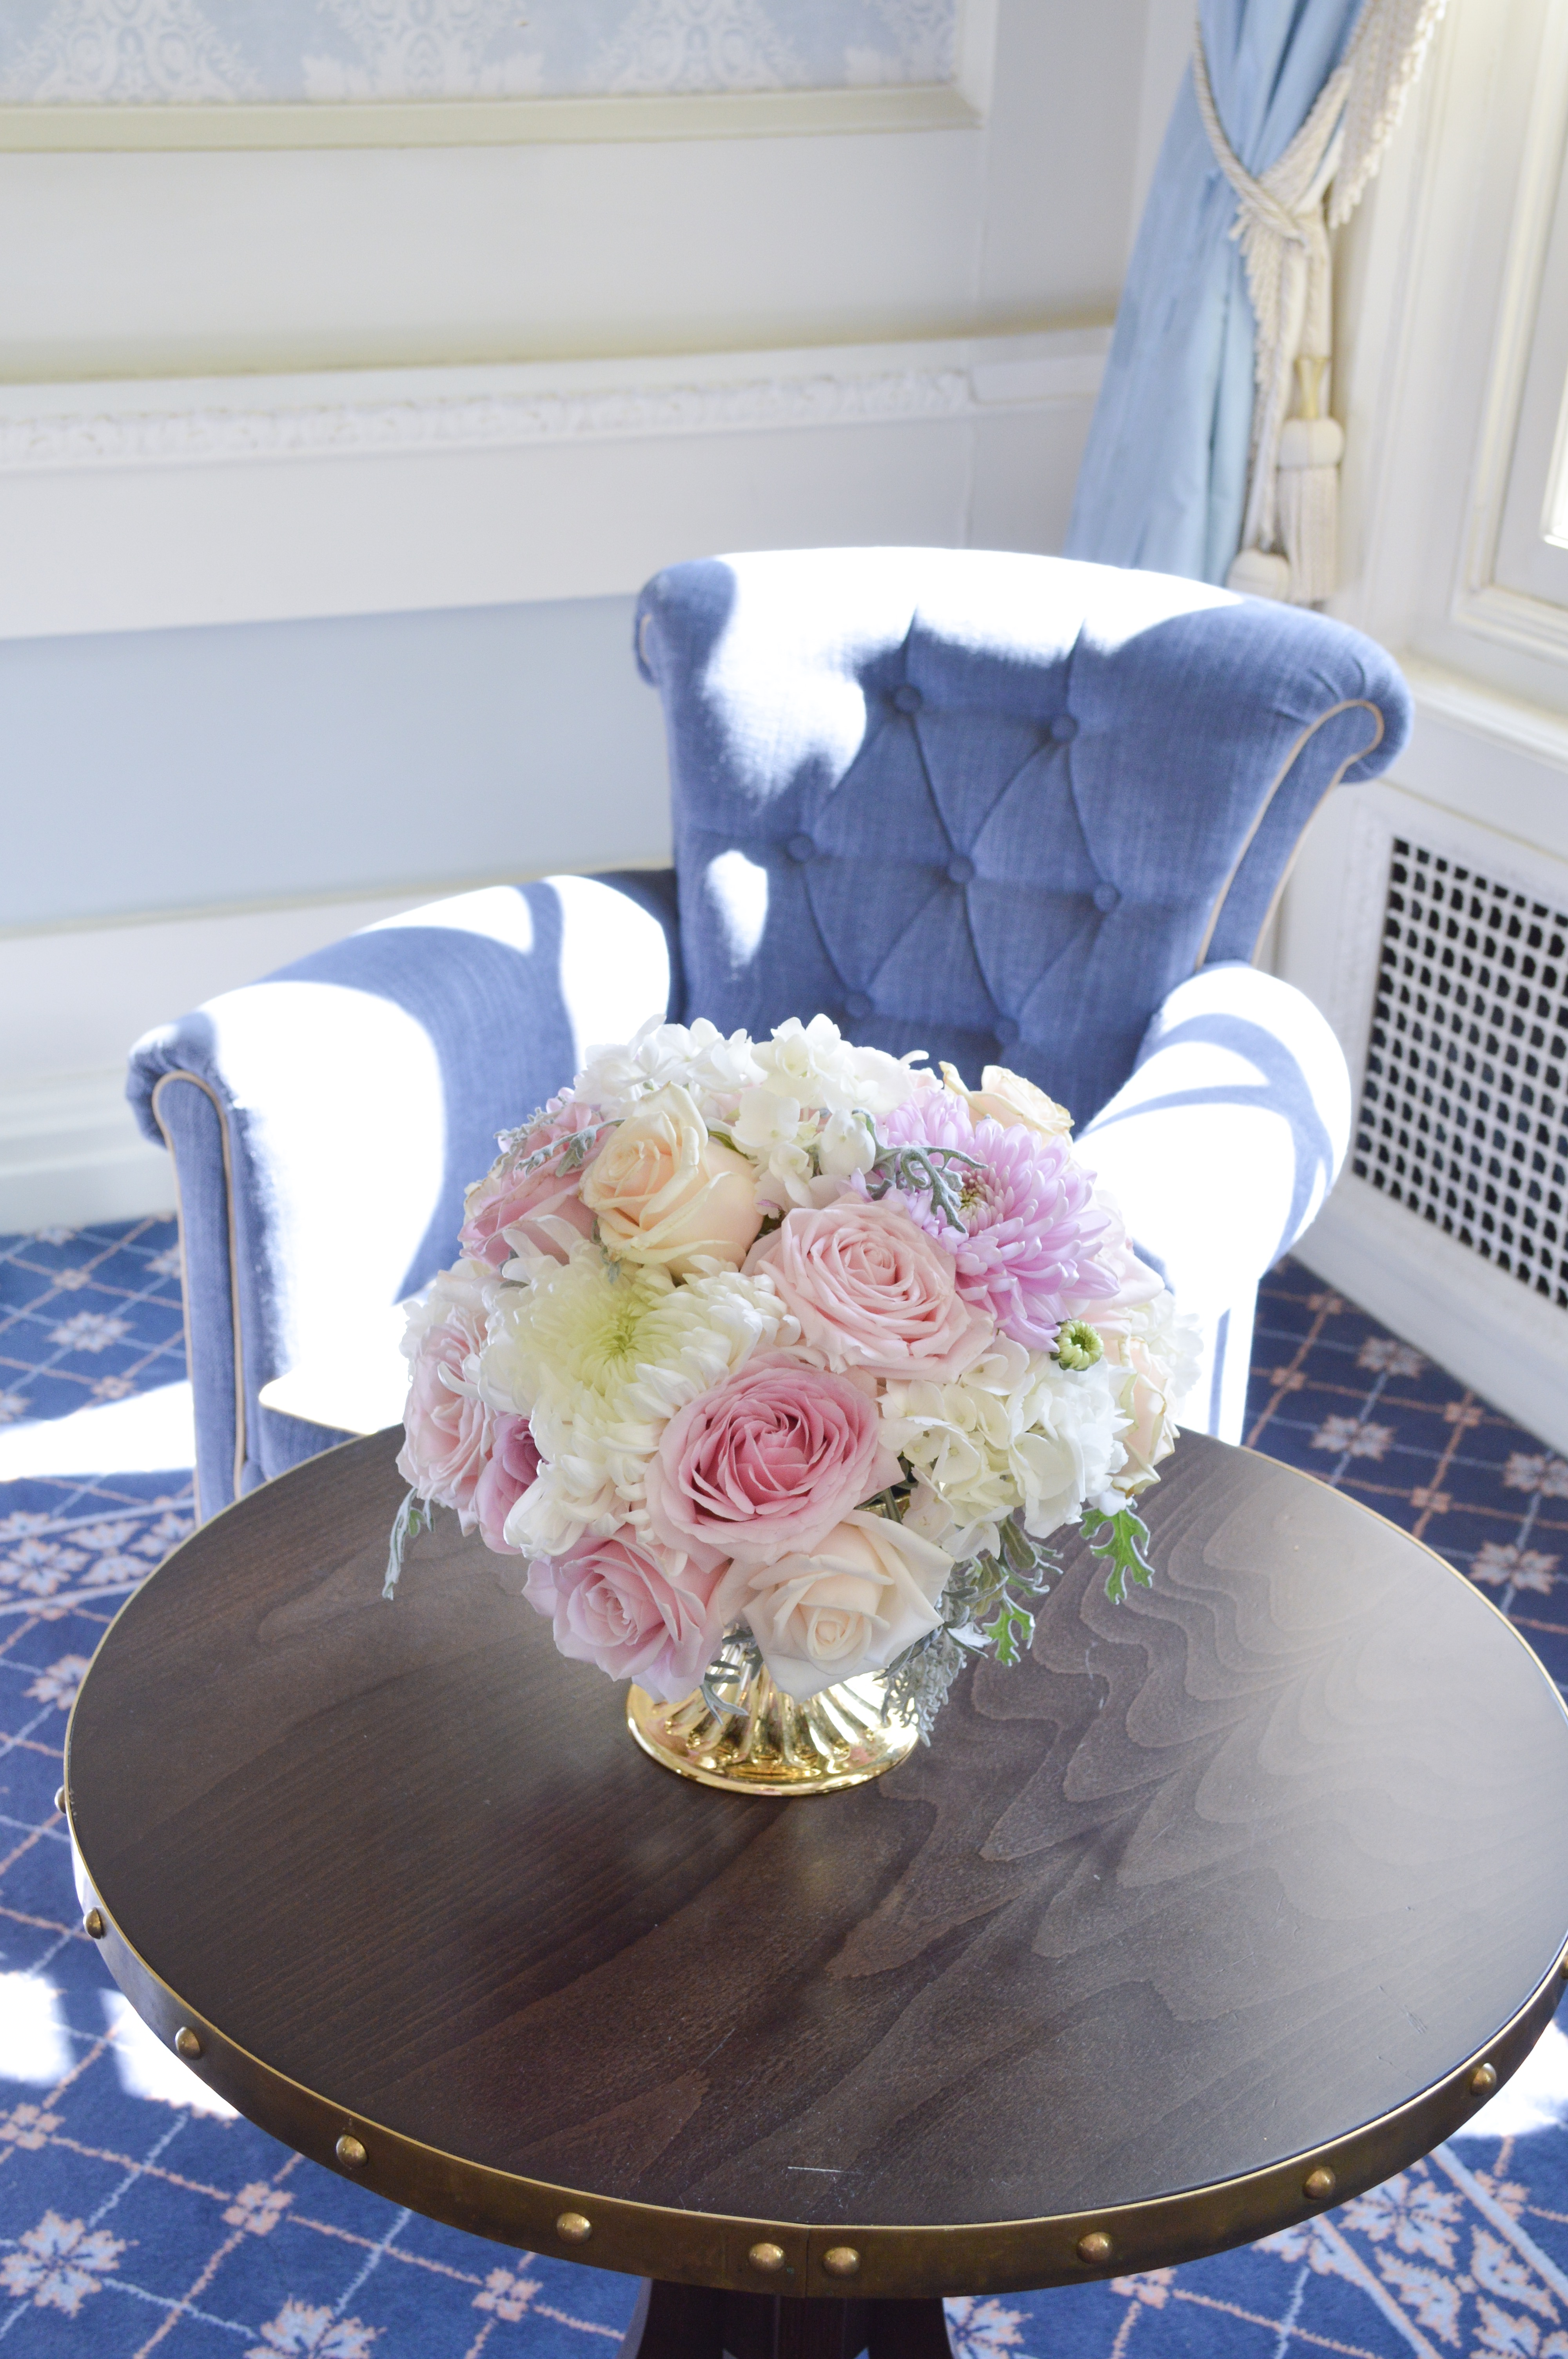 Dusty blue and pink wedding fireplace arrangements wedding low small centrepieces Cherie Kelly cakes London Hedsor House